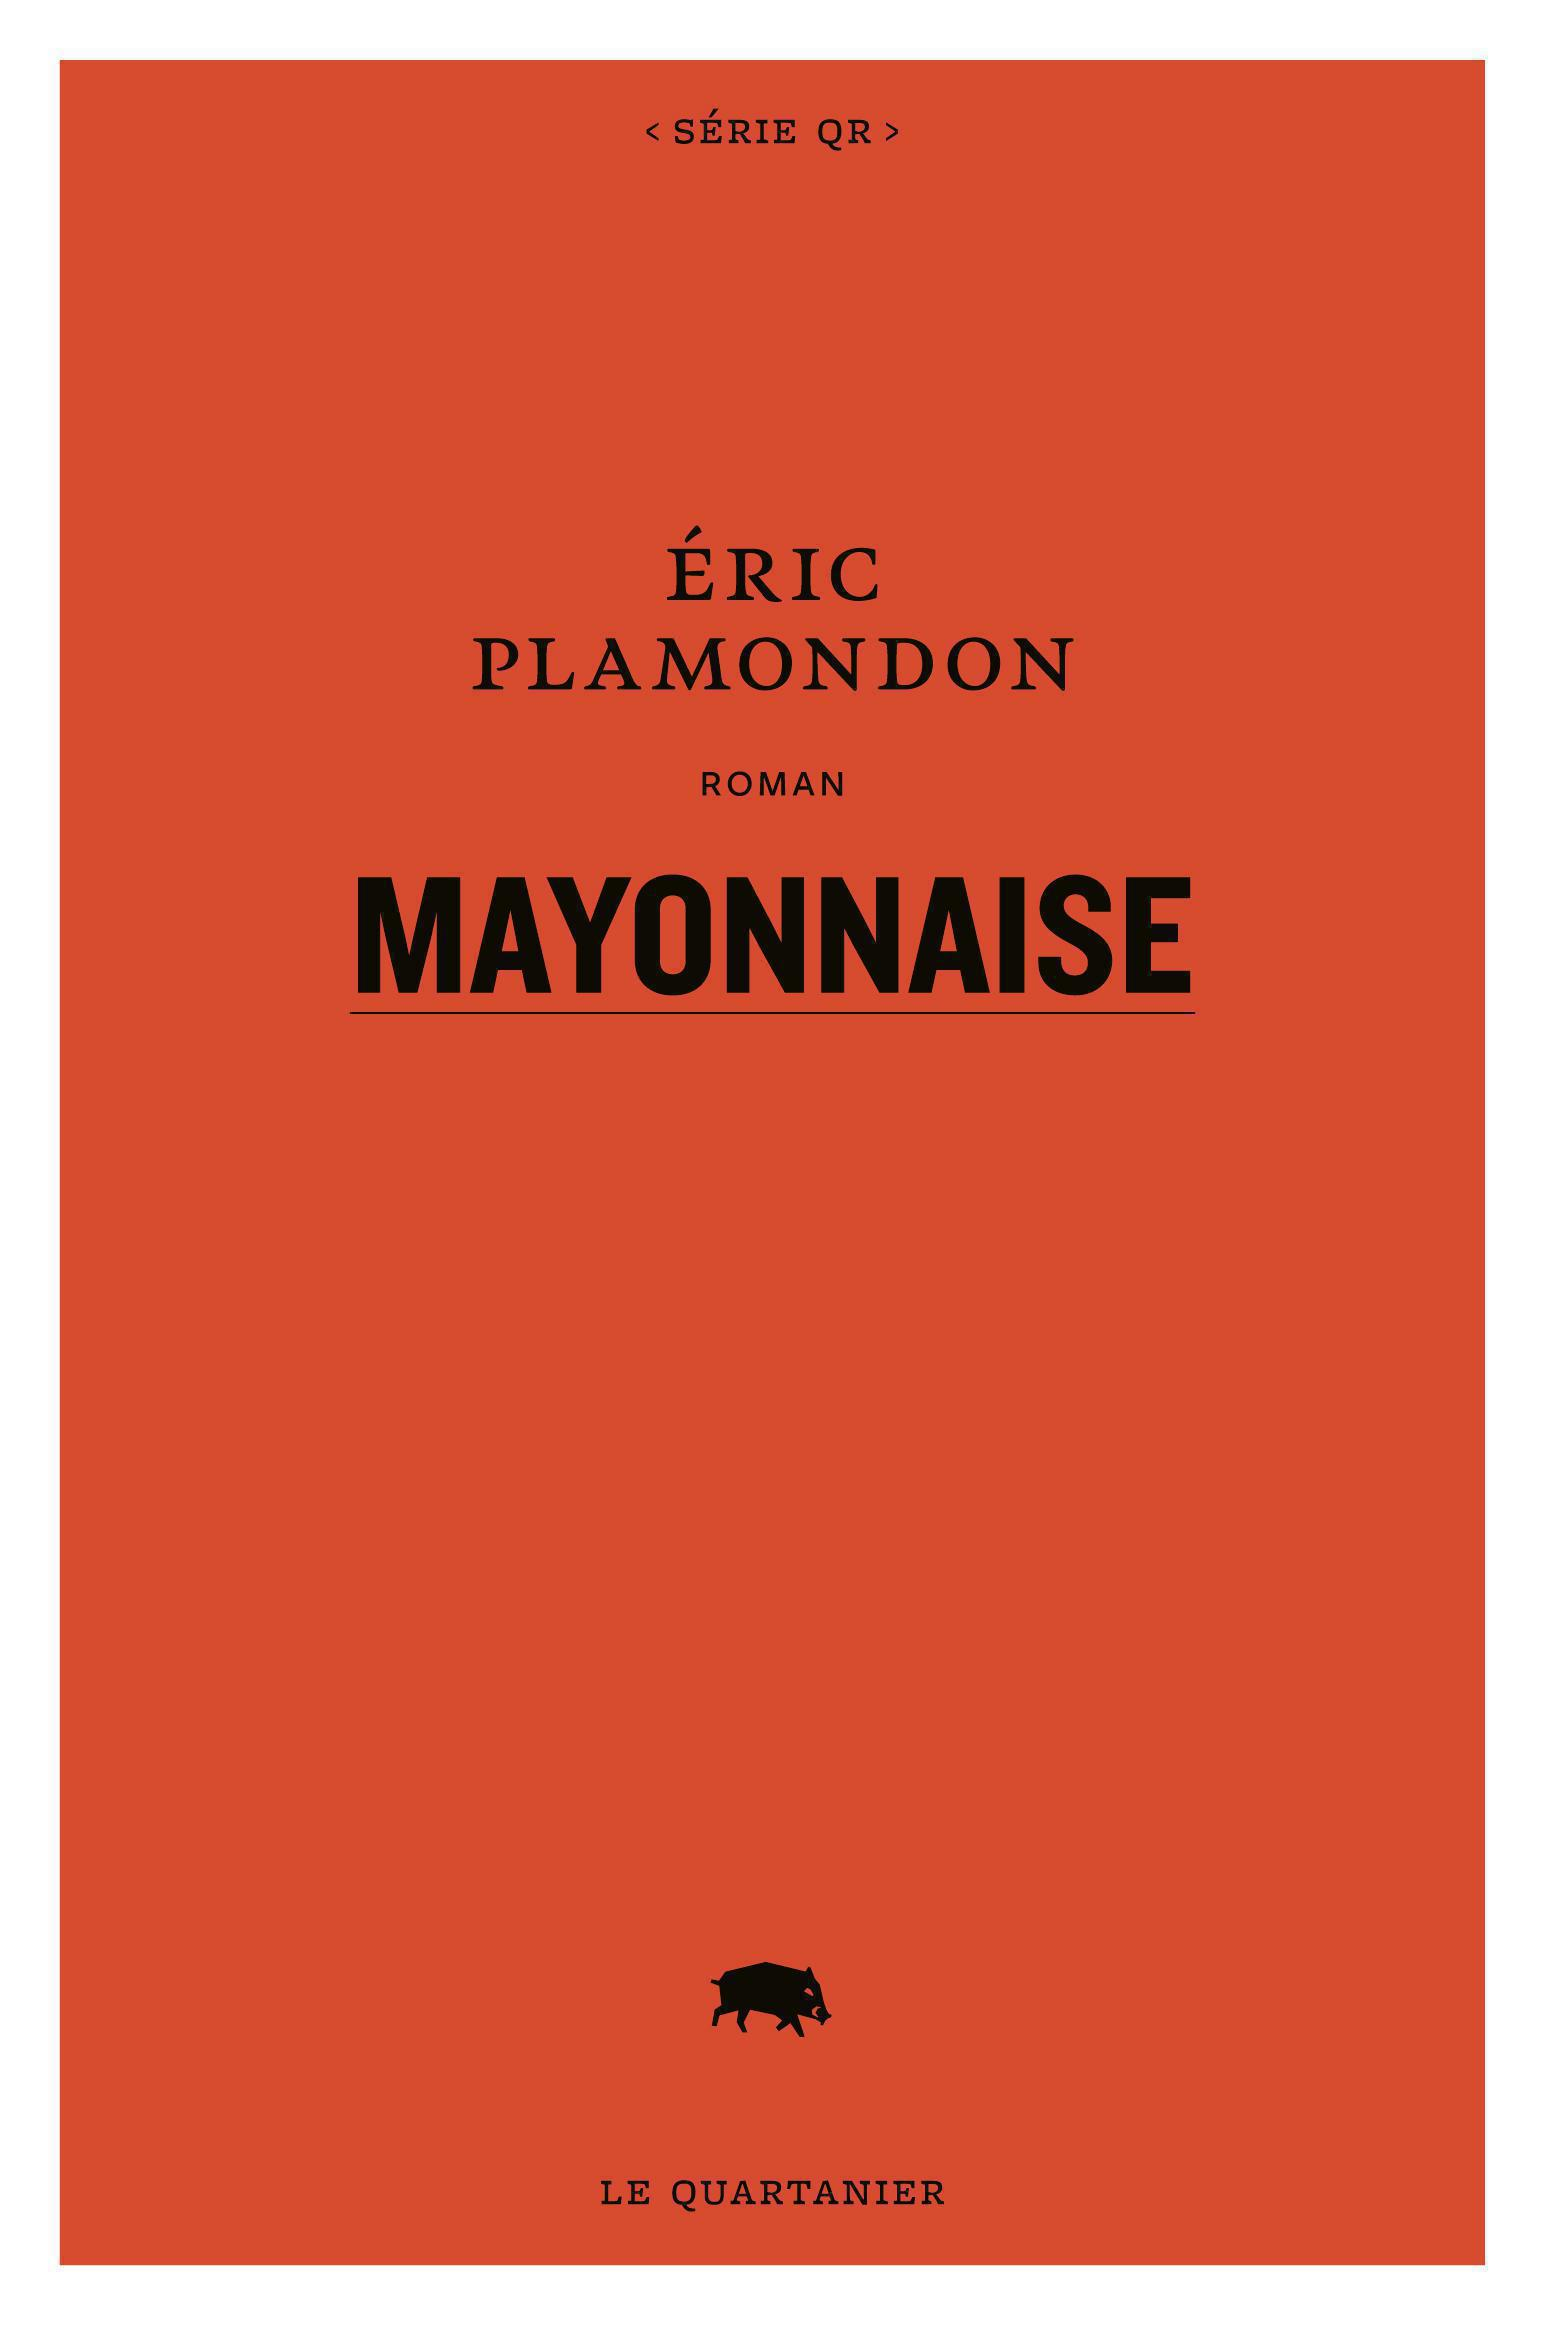 Couverture : Mayonnaise Eric Plamondon